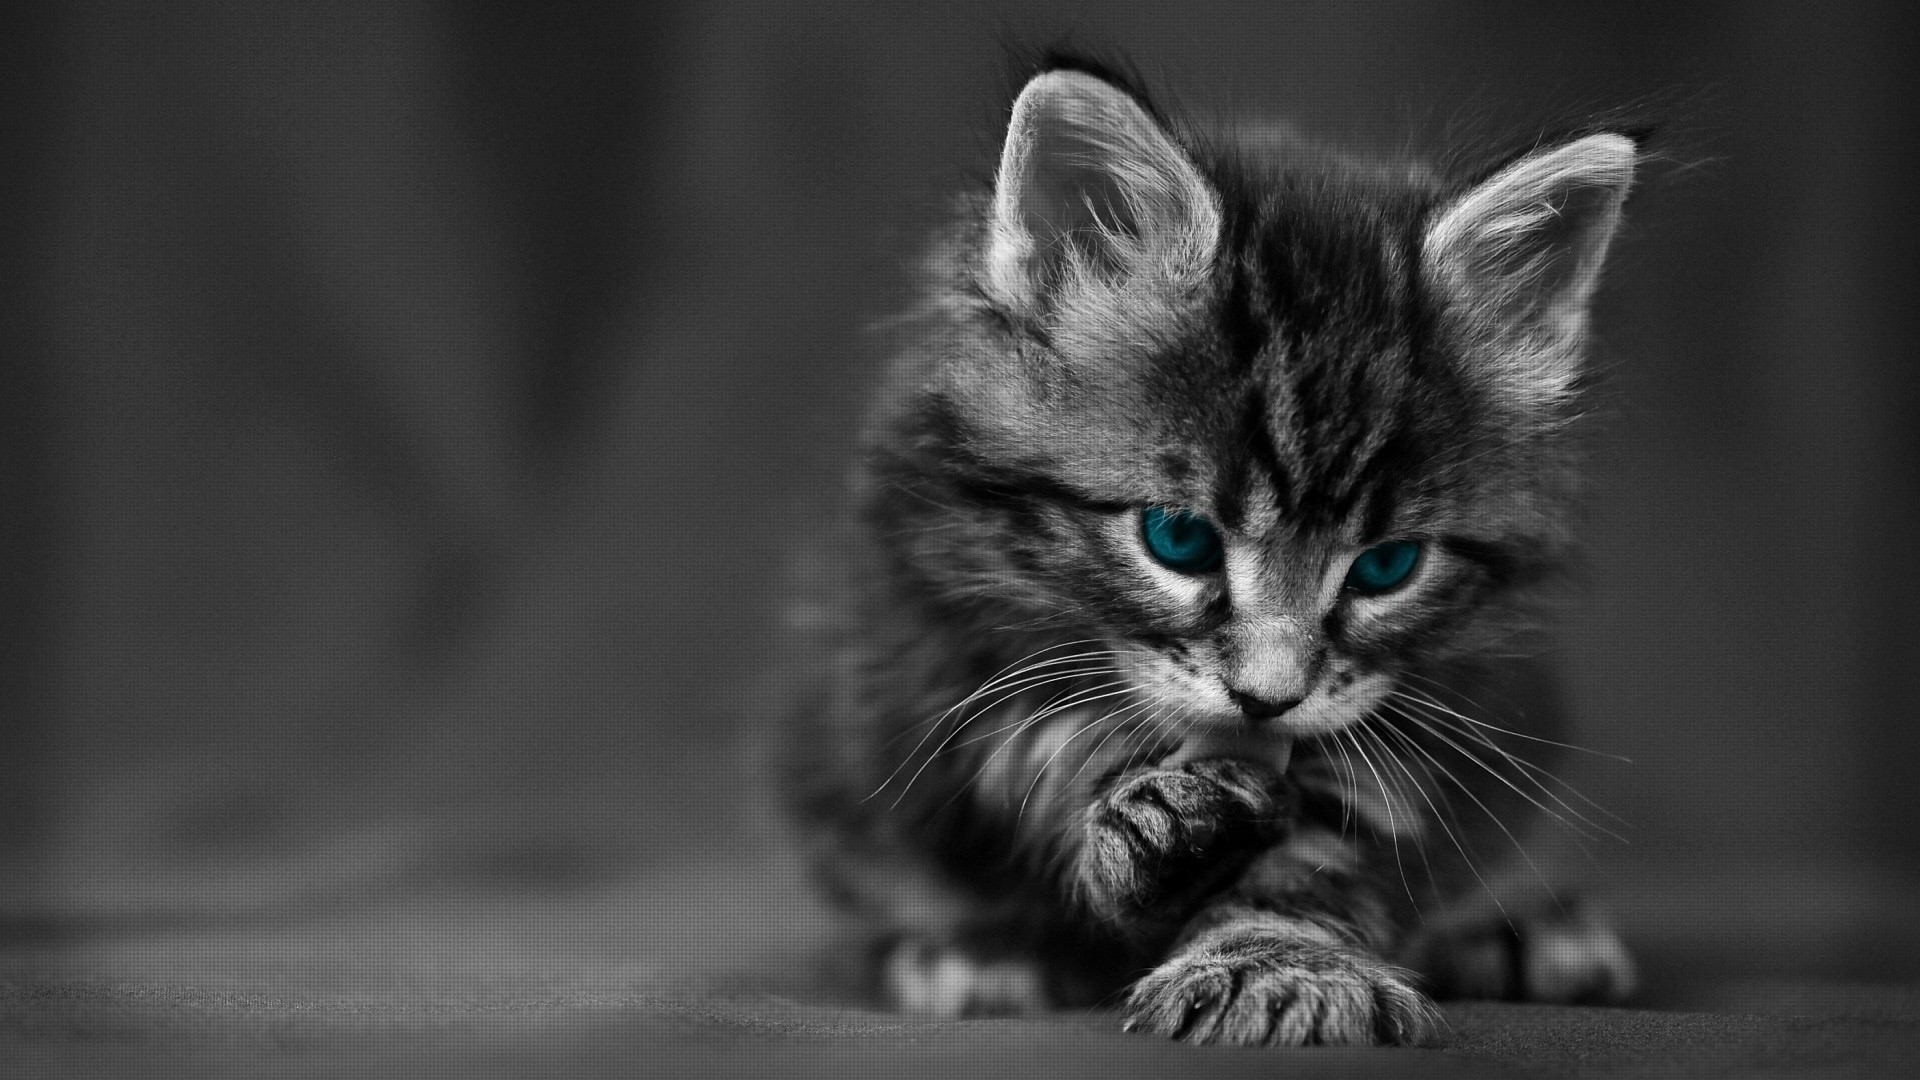 1920x1200 Kitten Wallpaper HD 15950